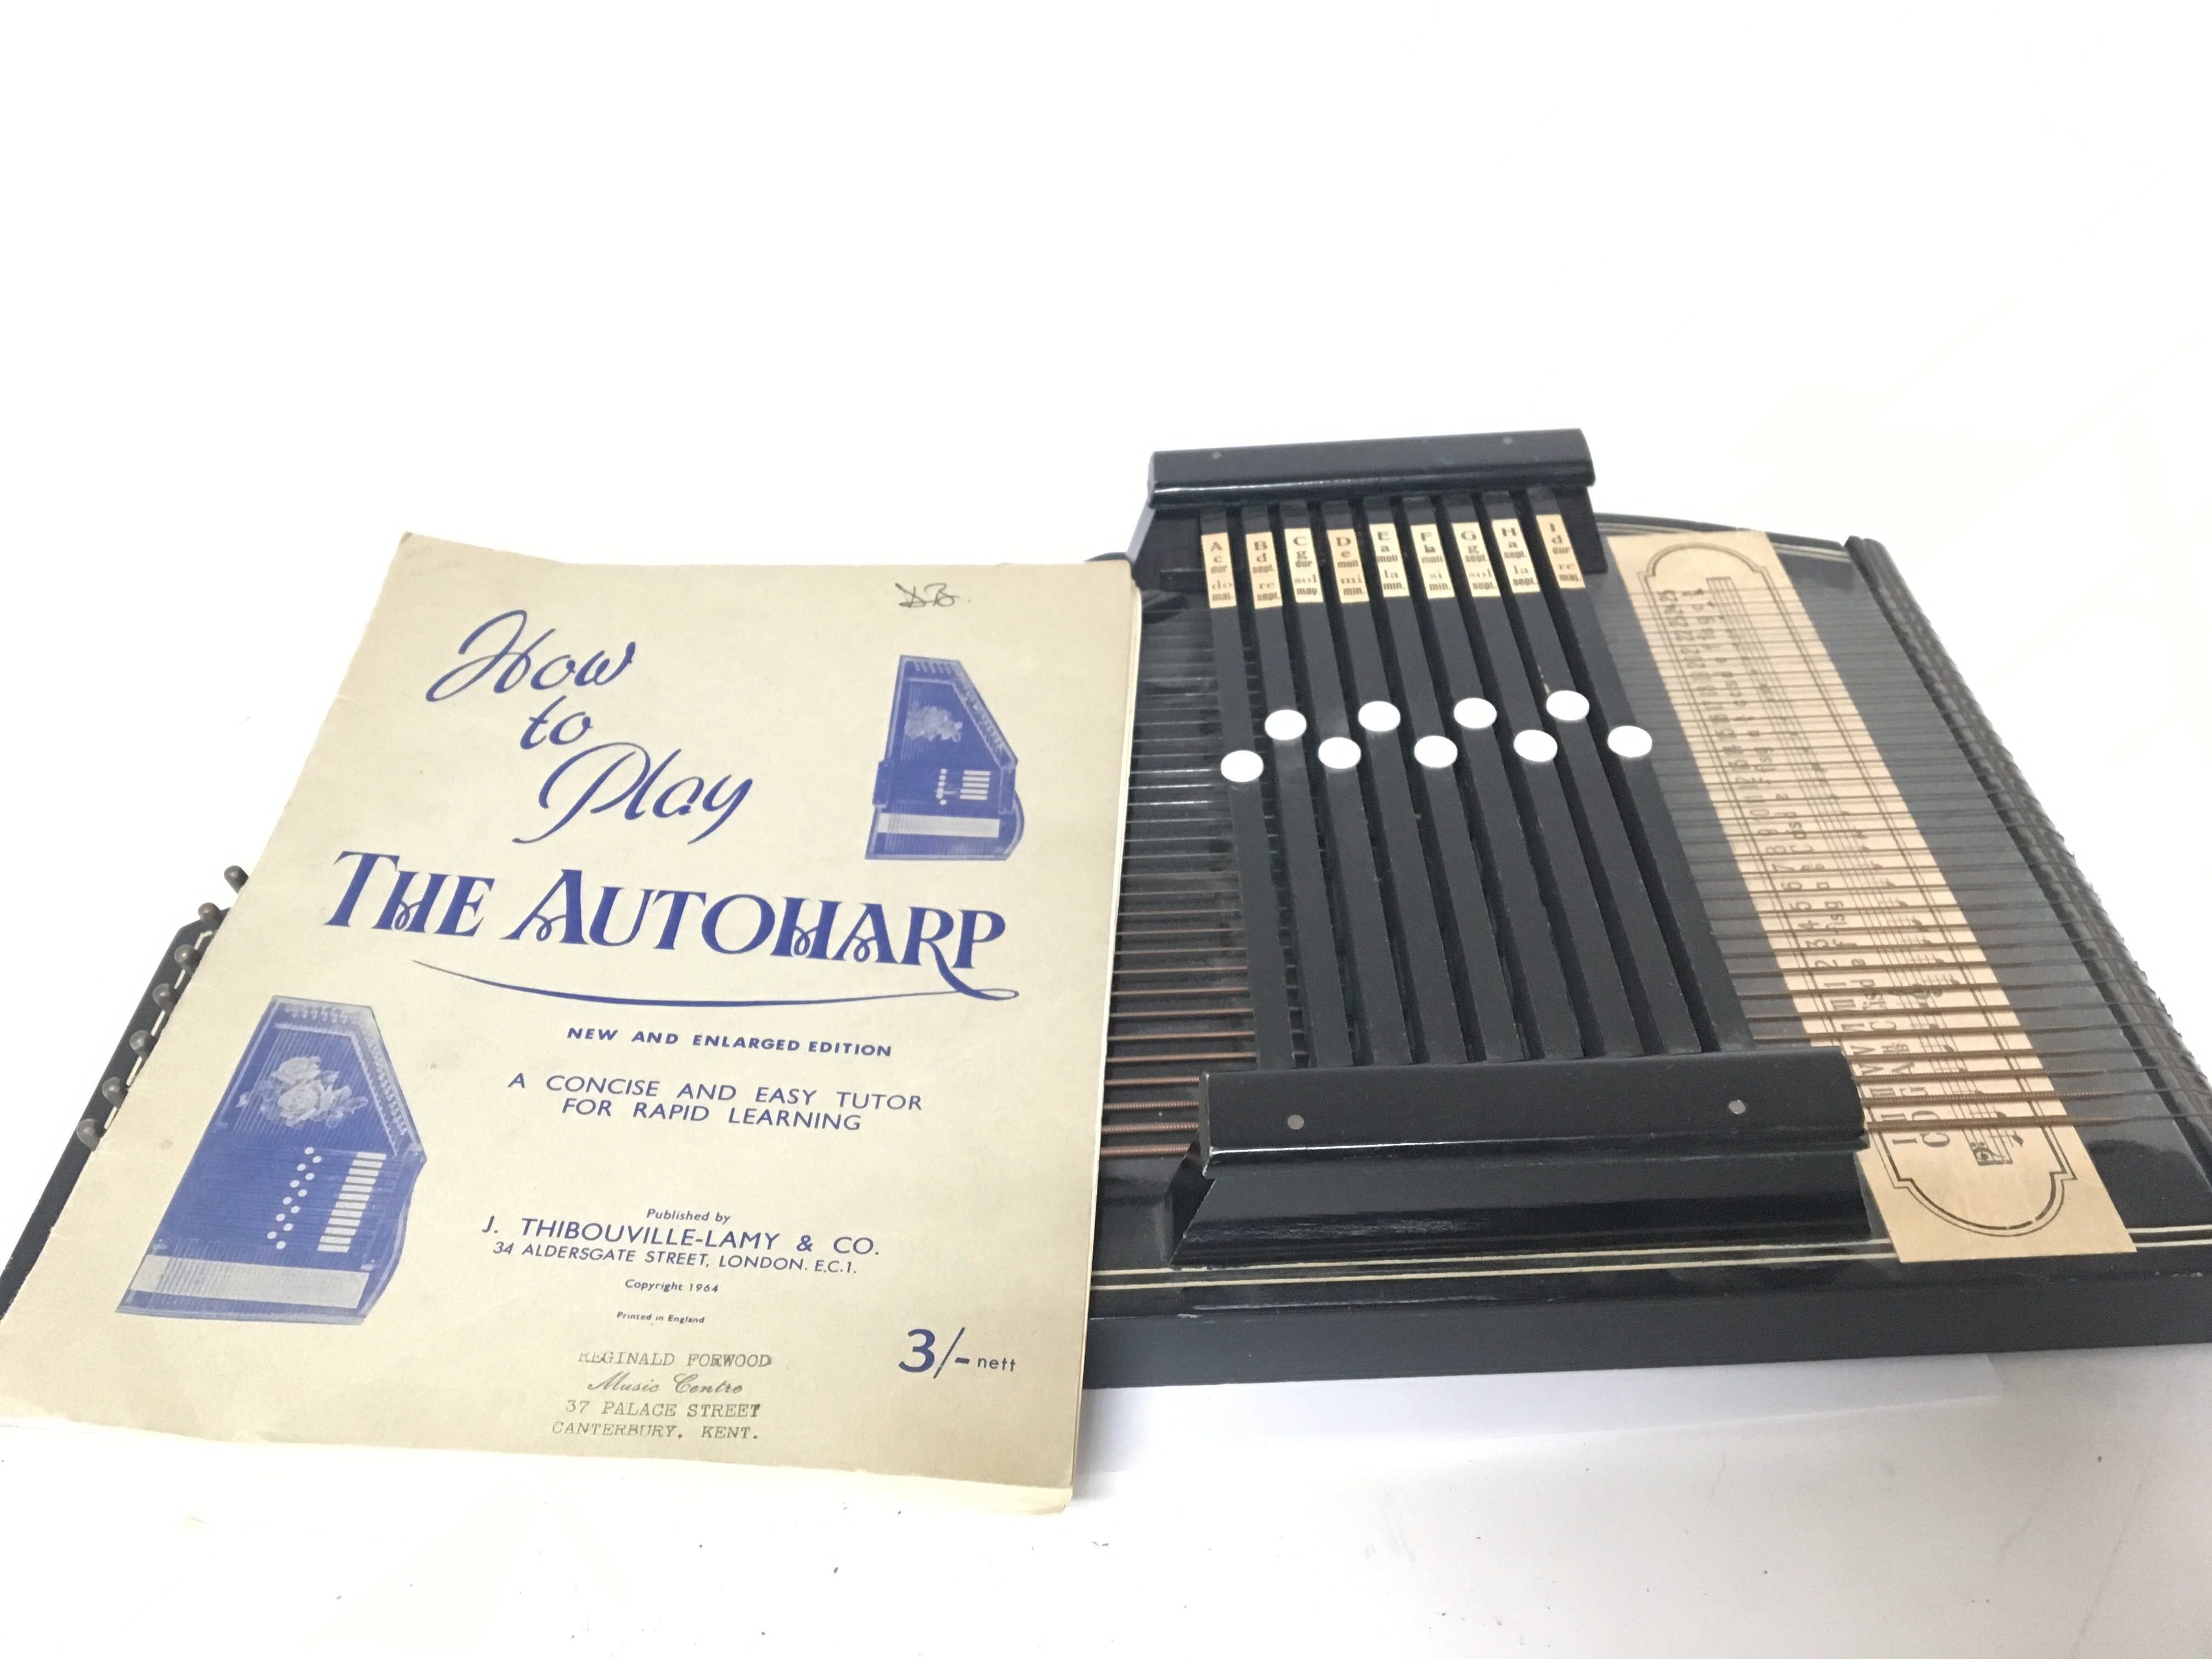 Lot 1898 - A Vintage Autoharp with a book of instructions.